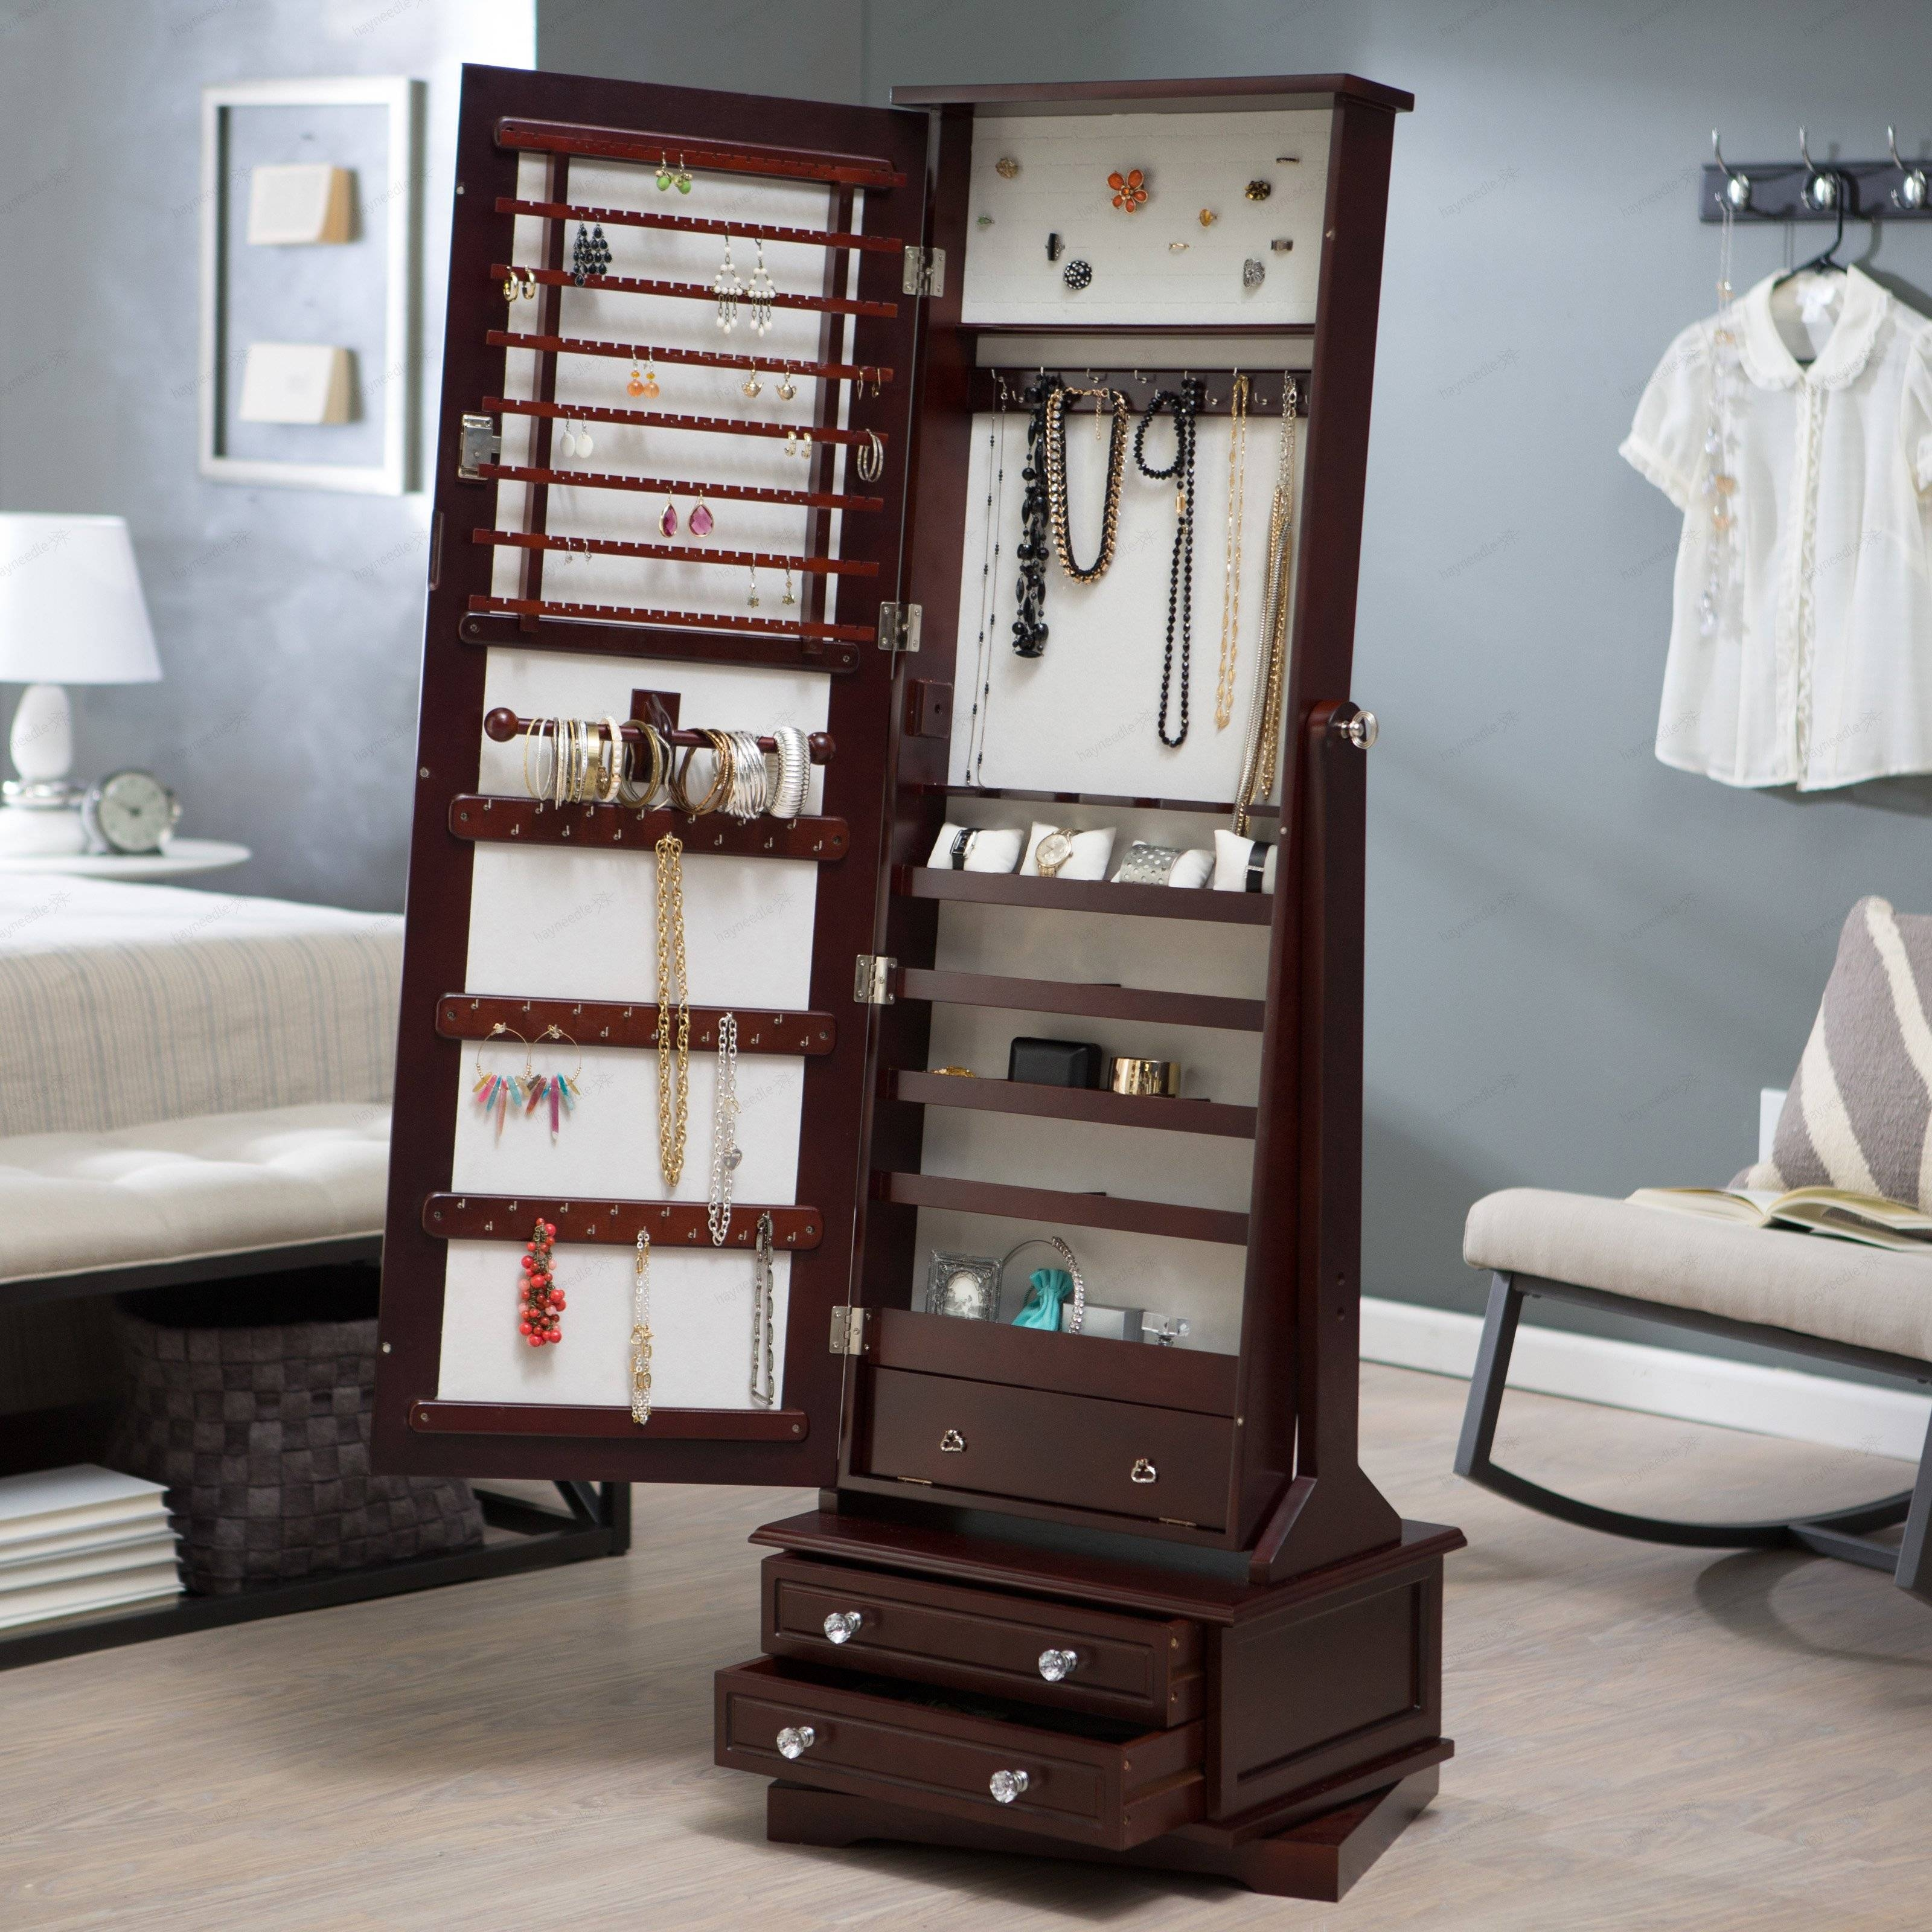 Belham Living Swivel Cheval Mirror Jewelry Armoire | Hayneedle with regard to Free Standing Mirrors With Drawer (Image 5 of 25)